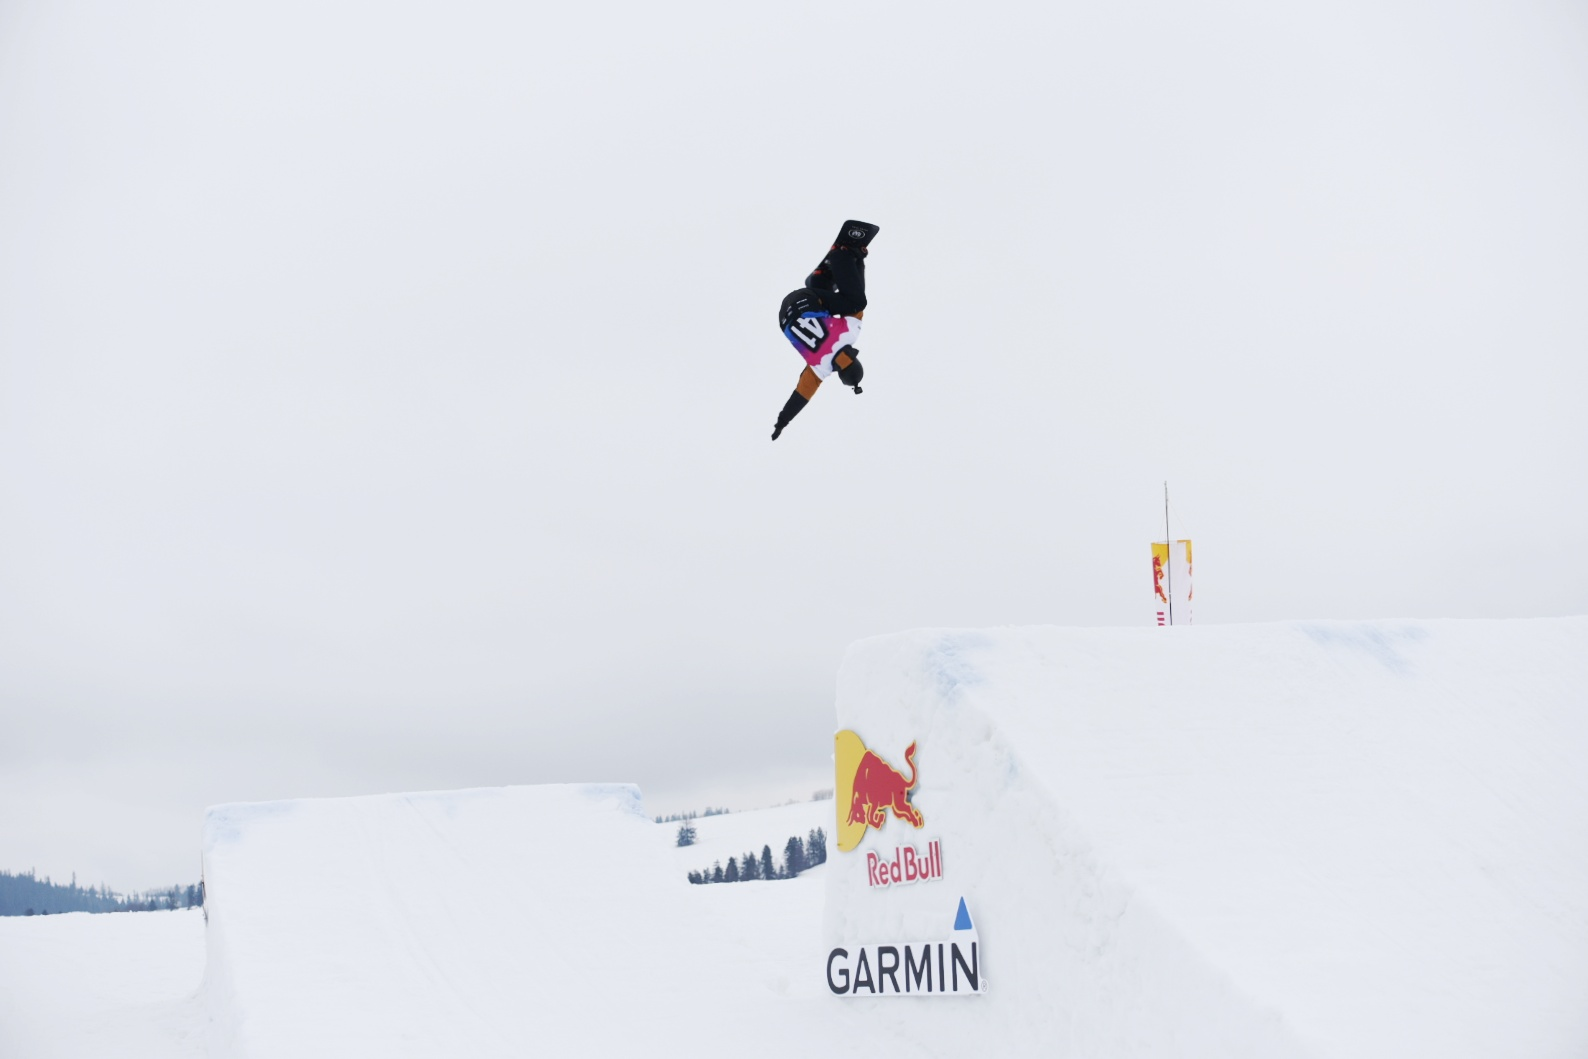 Garmin Winter Sports Festival 2019 – Qualifications Results